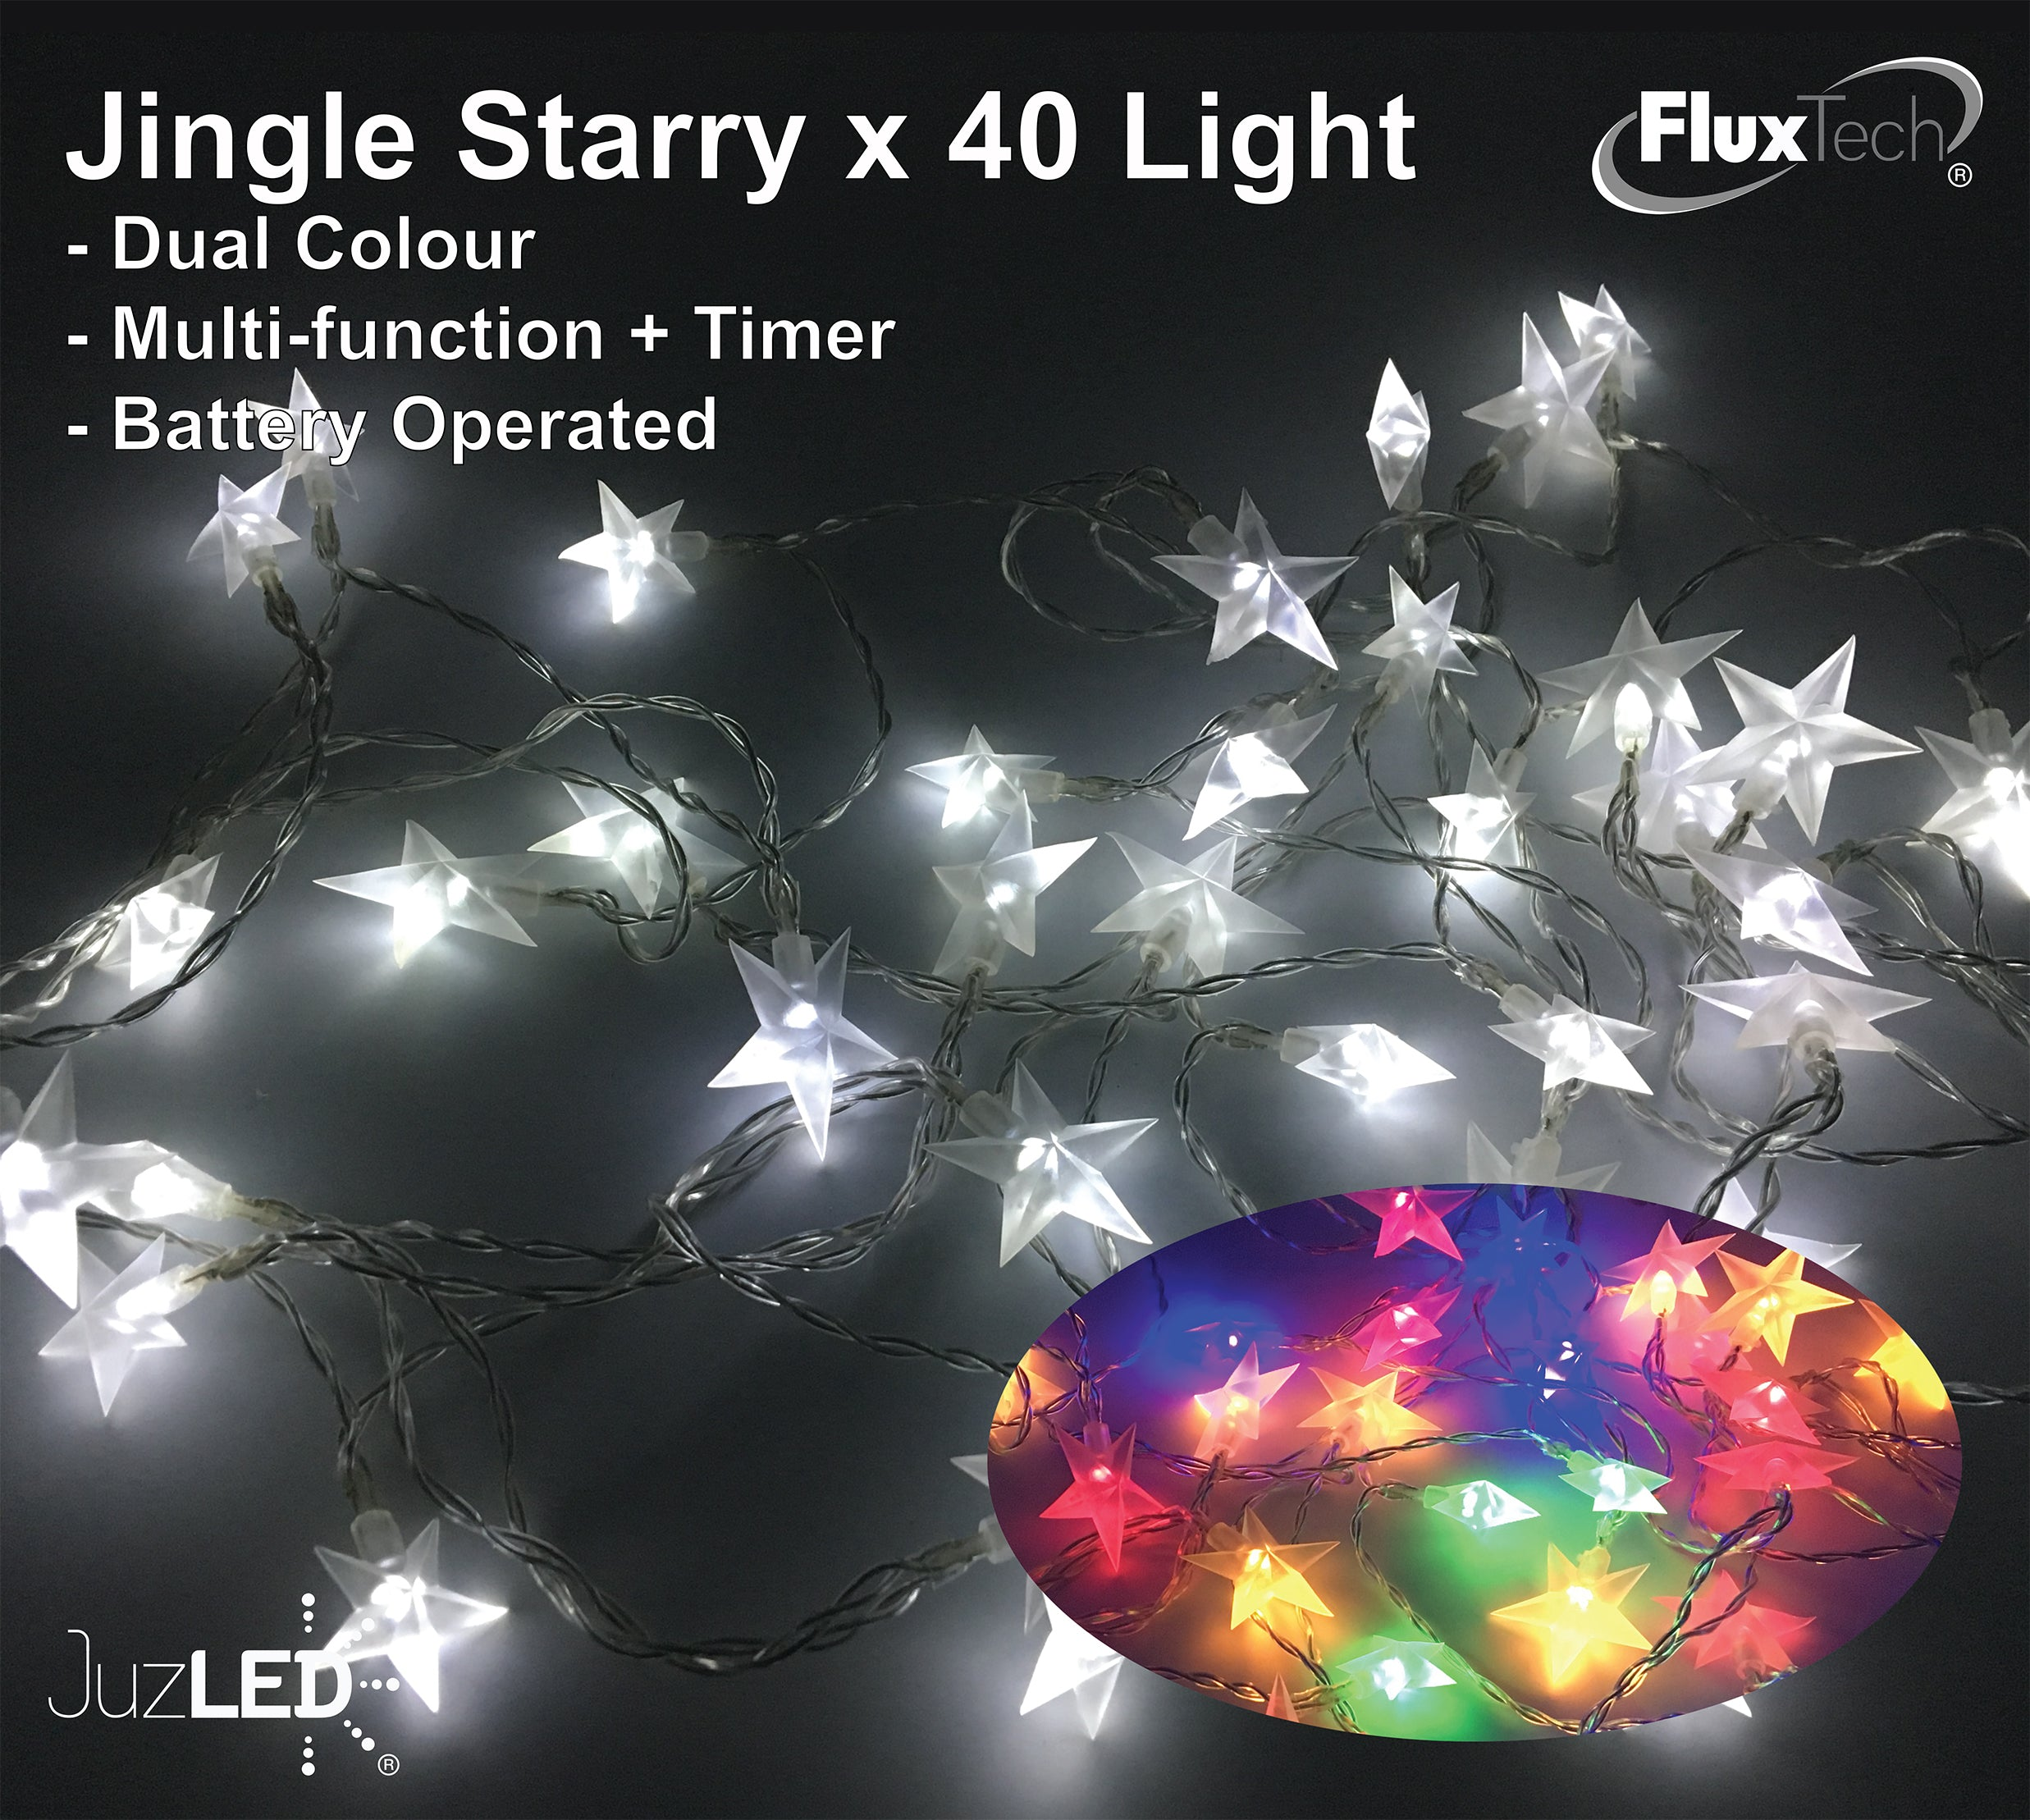 FluxTech - Twinkle Starry 40 x Dual Colour LED Lights by Santa's Factory – Multi-function Effect – Timer function - Battery Operated